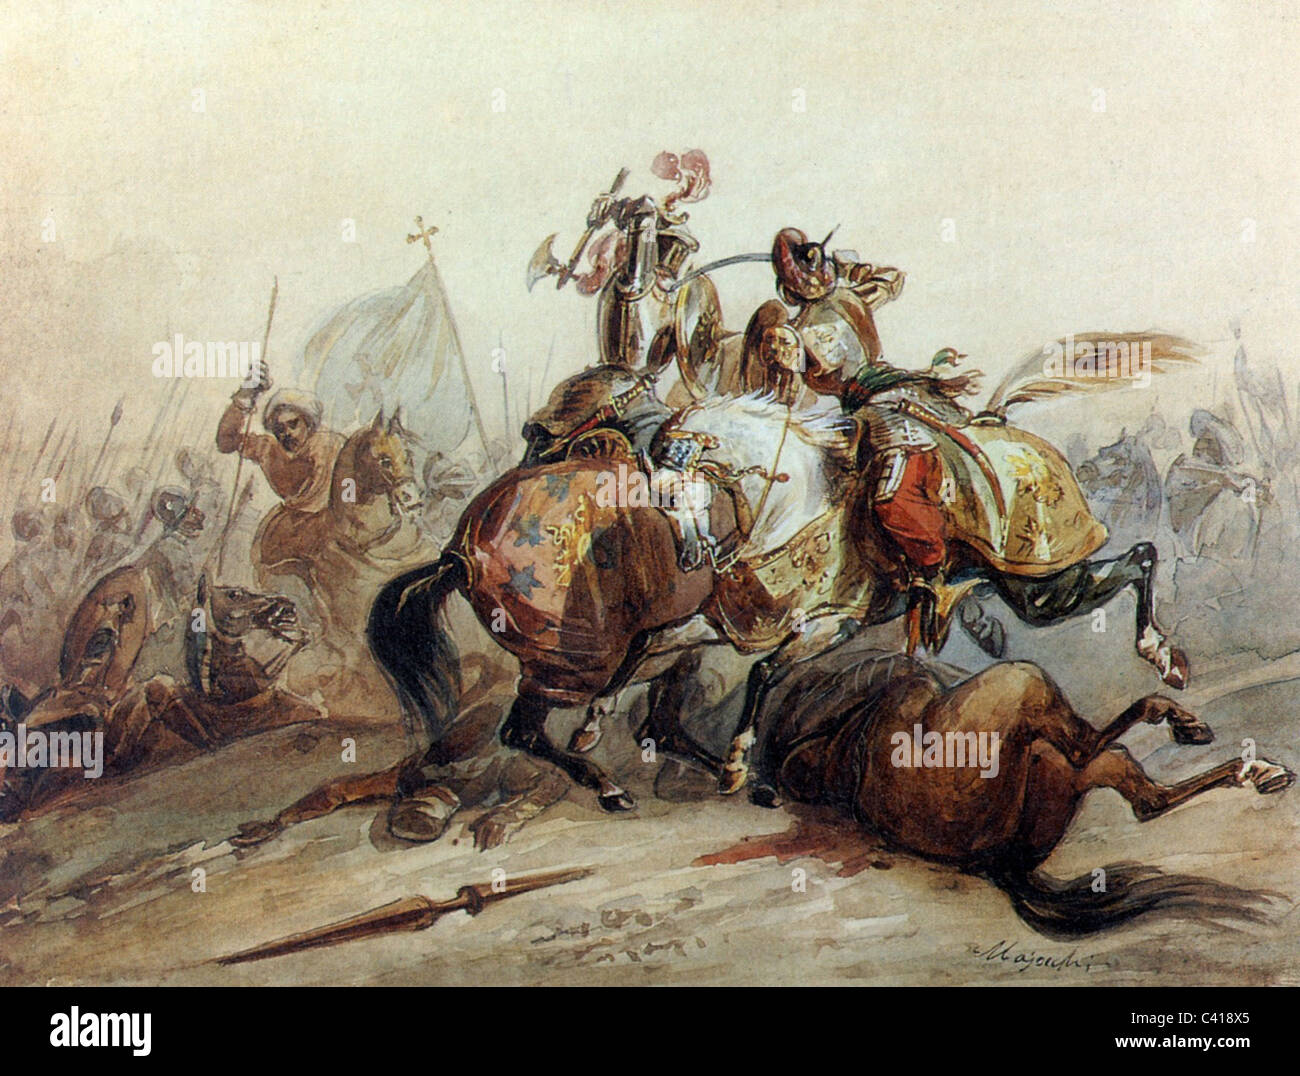 Middle ages, knights, crusaders, fighting with Saracen, painting by Majocchi, 1st half of the 19th century, historic, - Stock Image